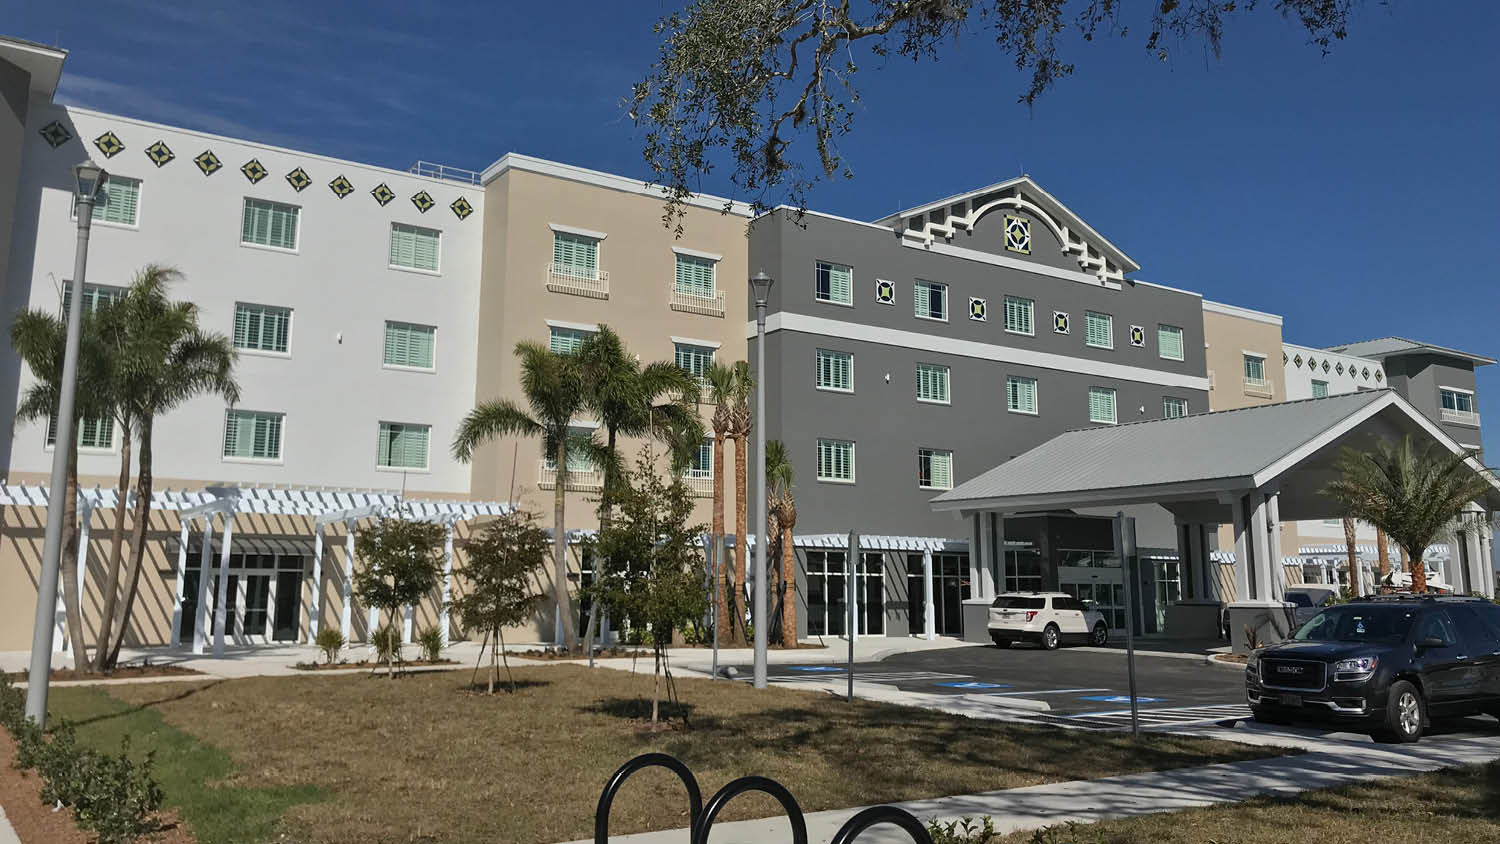 A new hotel in Sarasota